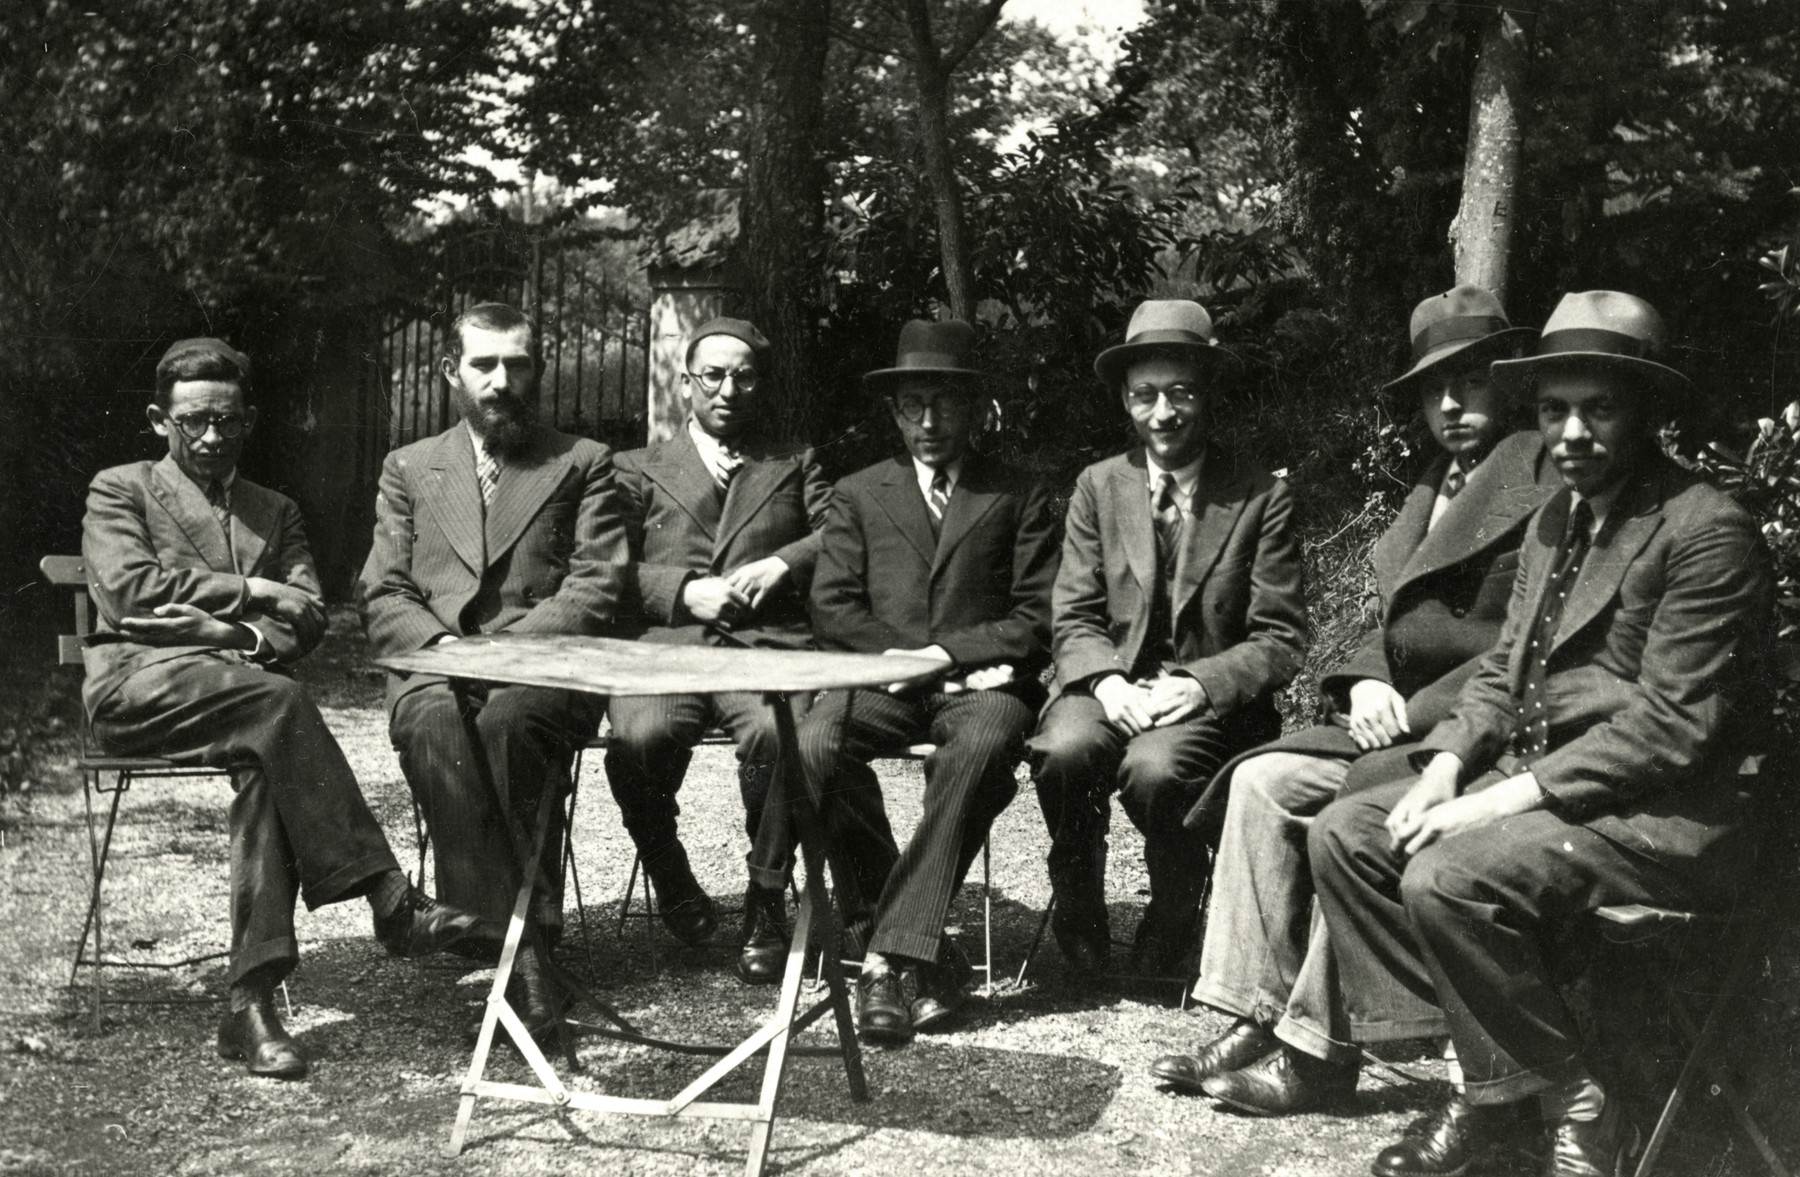 Group portrait of rabbinical students or young rabbis [probably in France].  Rabbi Moise Cassorla is seated third from the left.